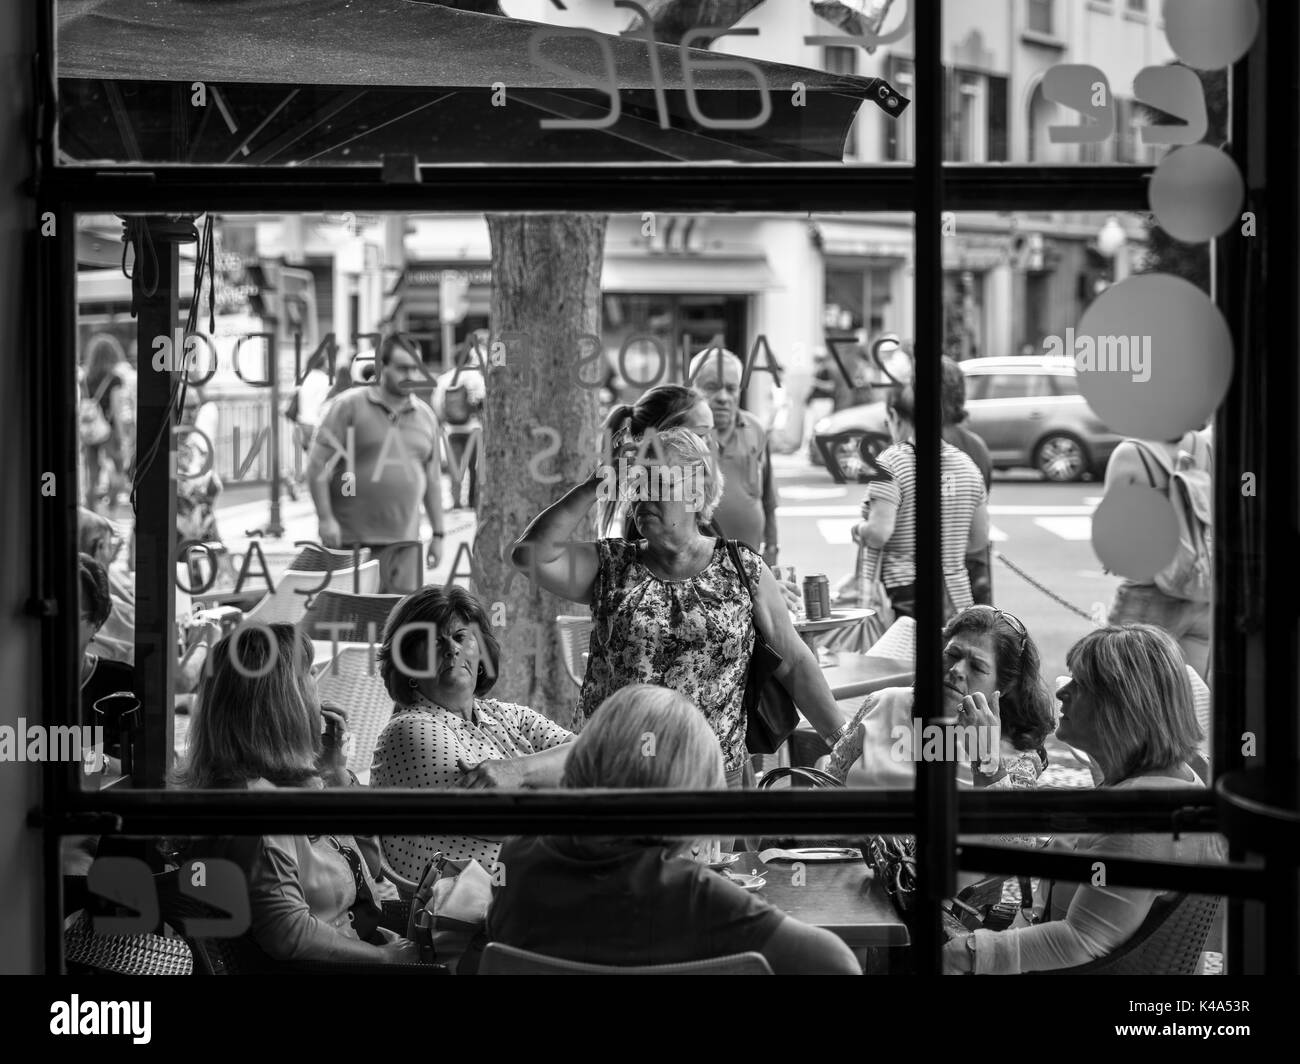 Looking Out The Window Of Street Cafes In Funchal, Madeira - Stock Image